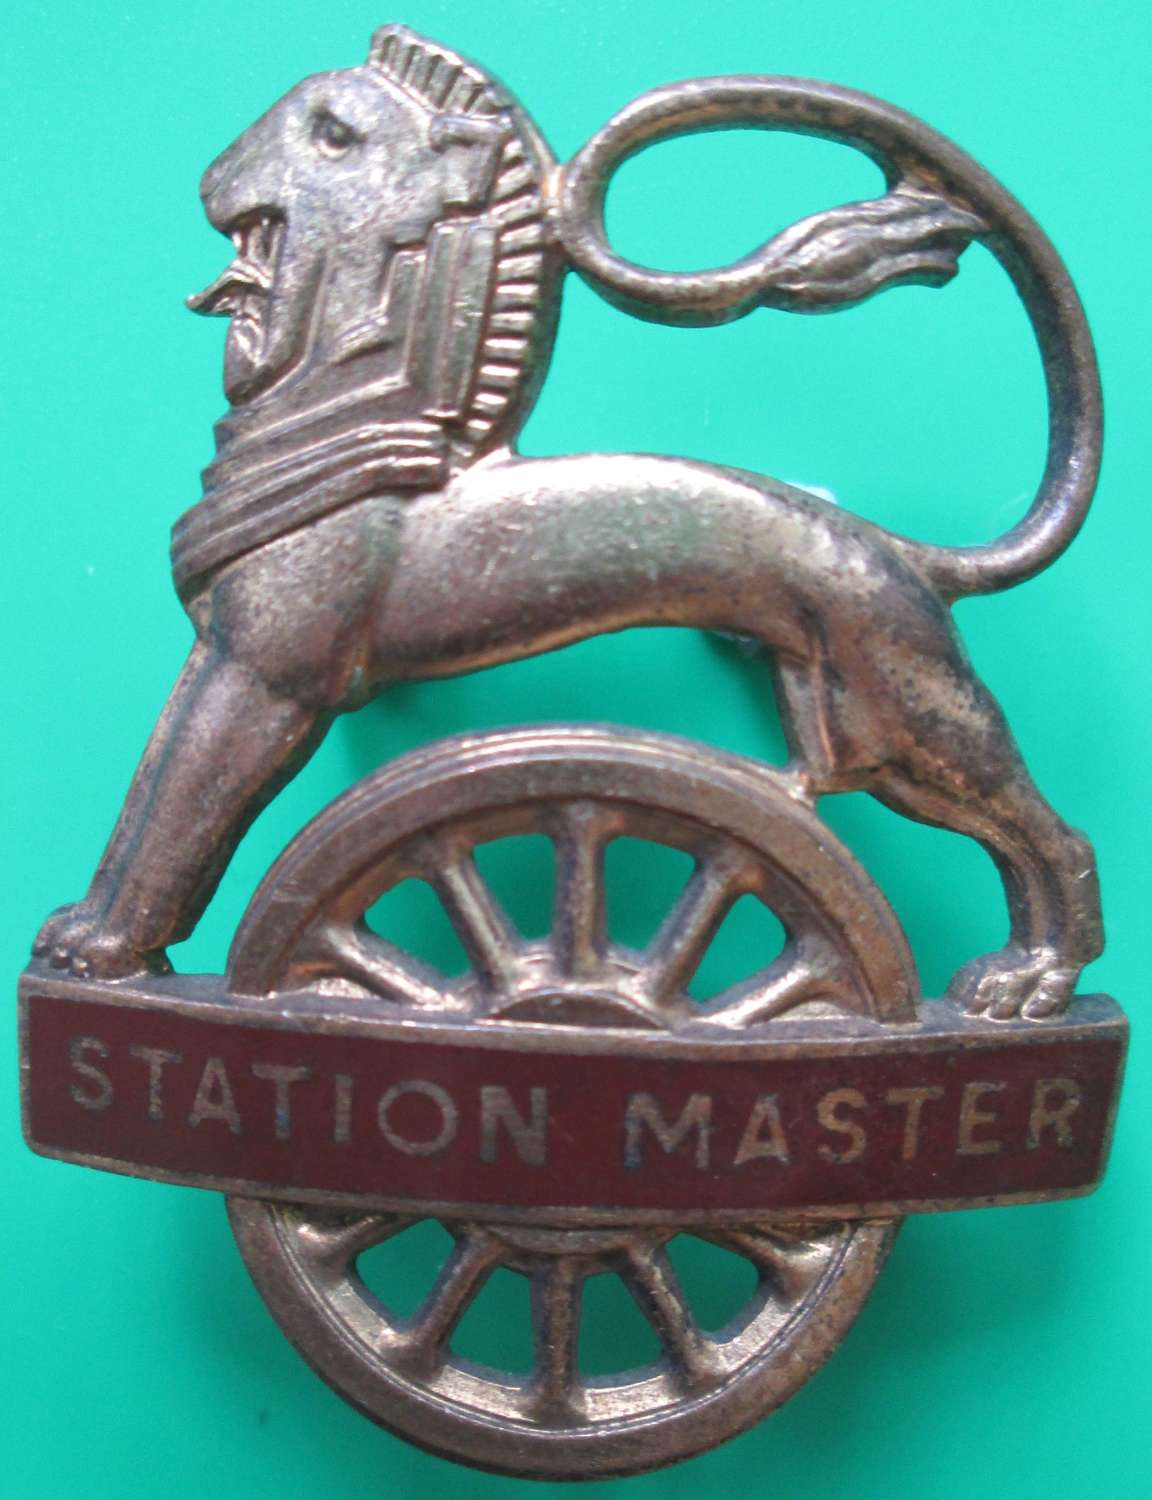 A BRITISH RAILWAYS STATION MASTERS CAP BADGE